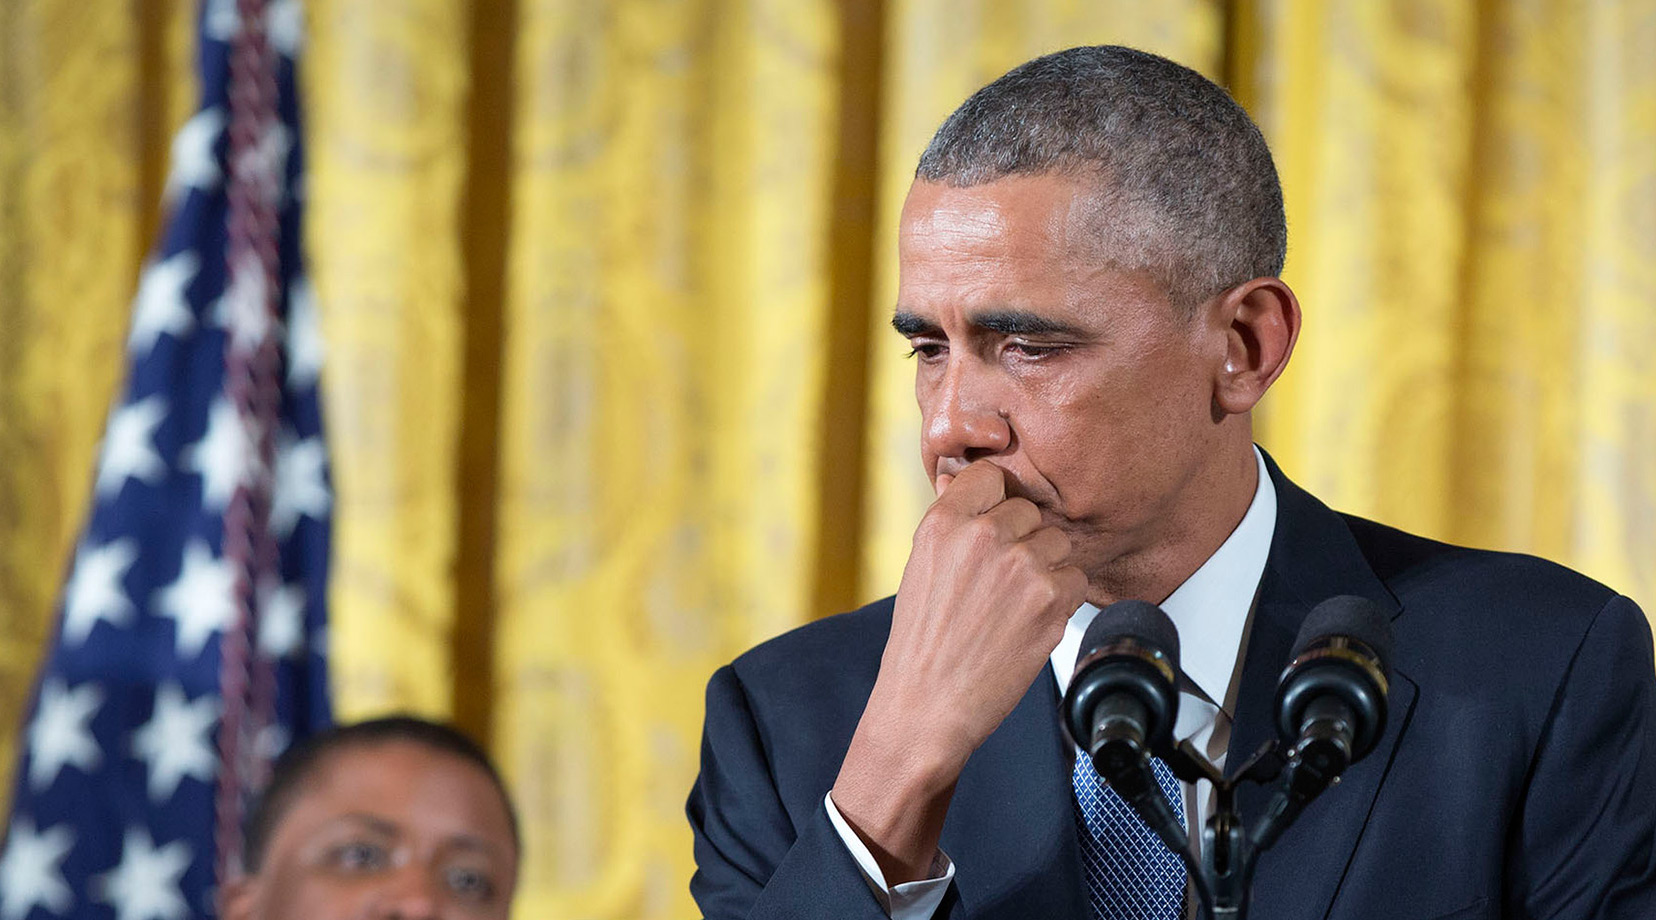 Barack Obama: We all bear responsibility to reduce gun violence